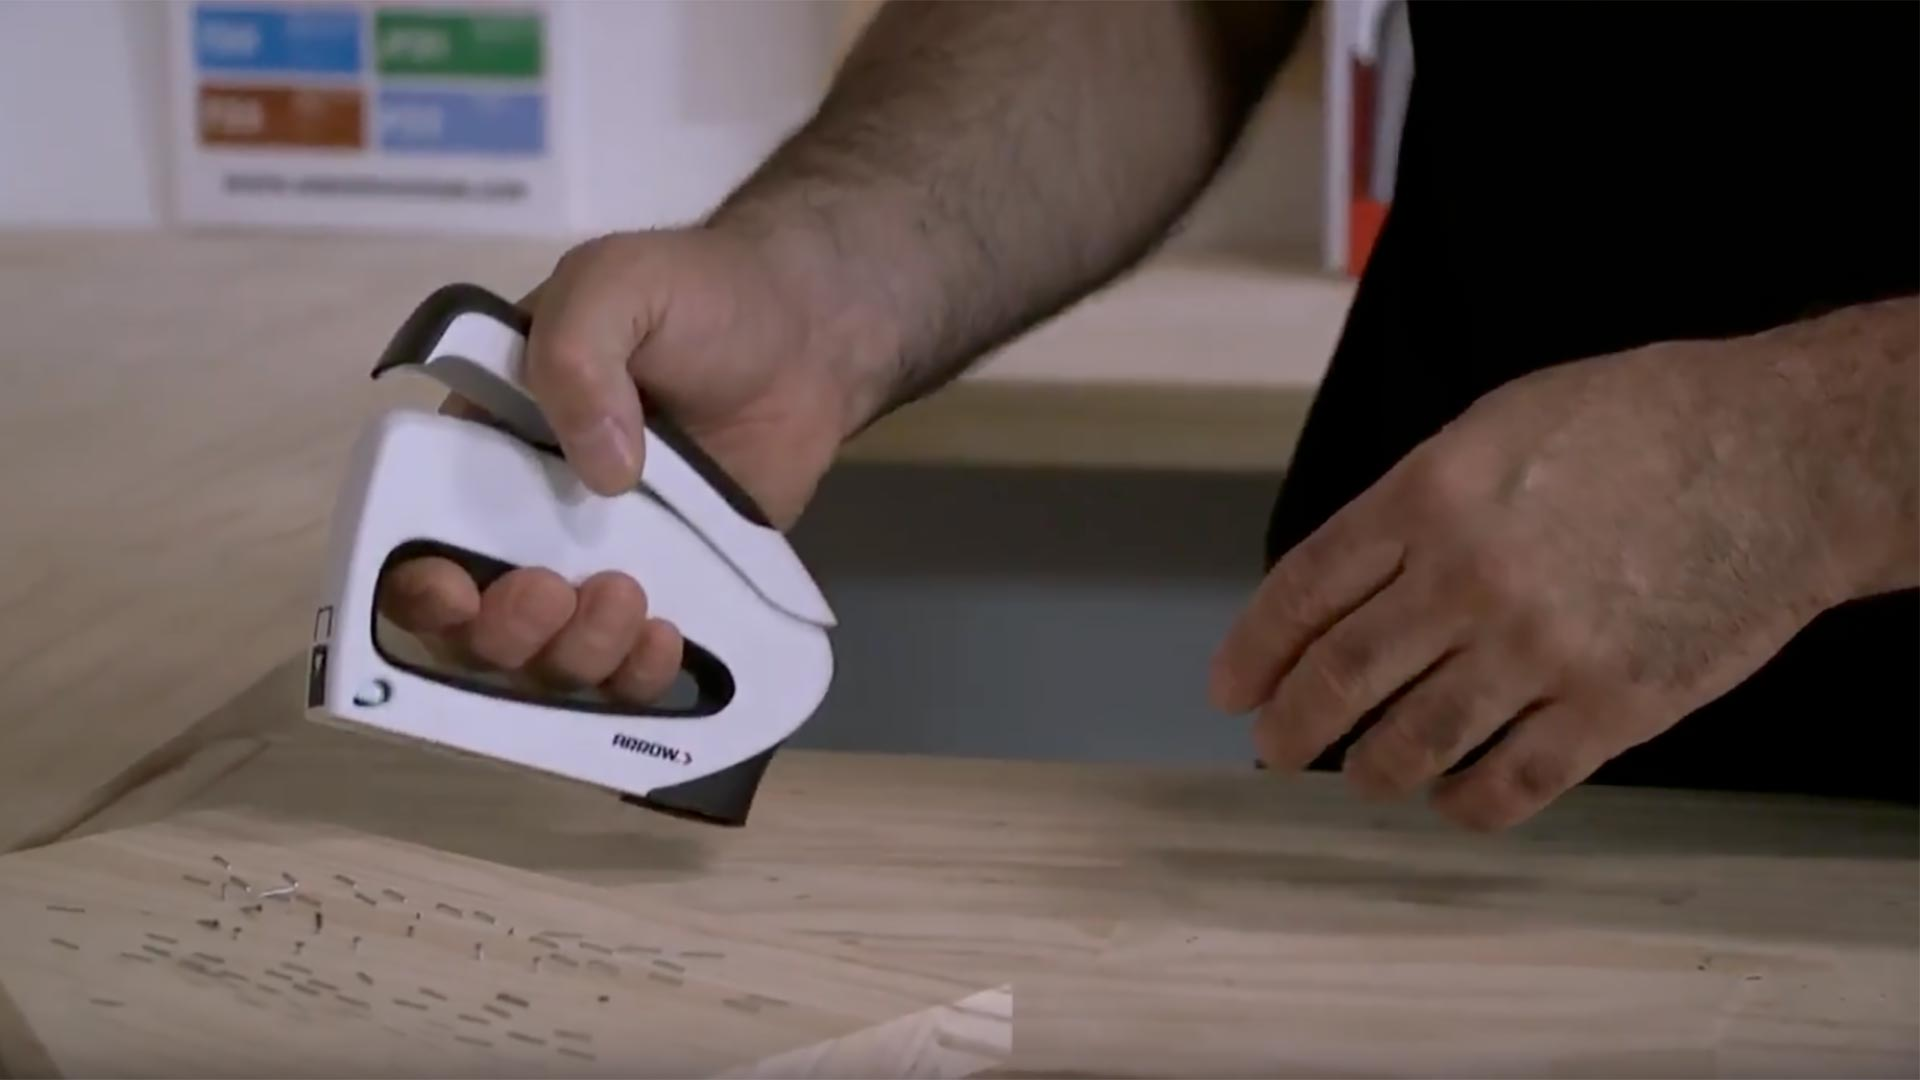 TT21 TruTac Staple Gun